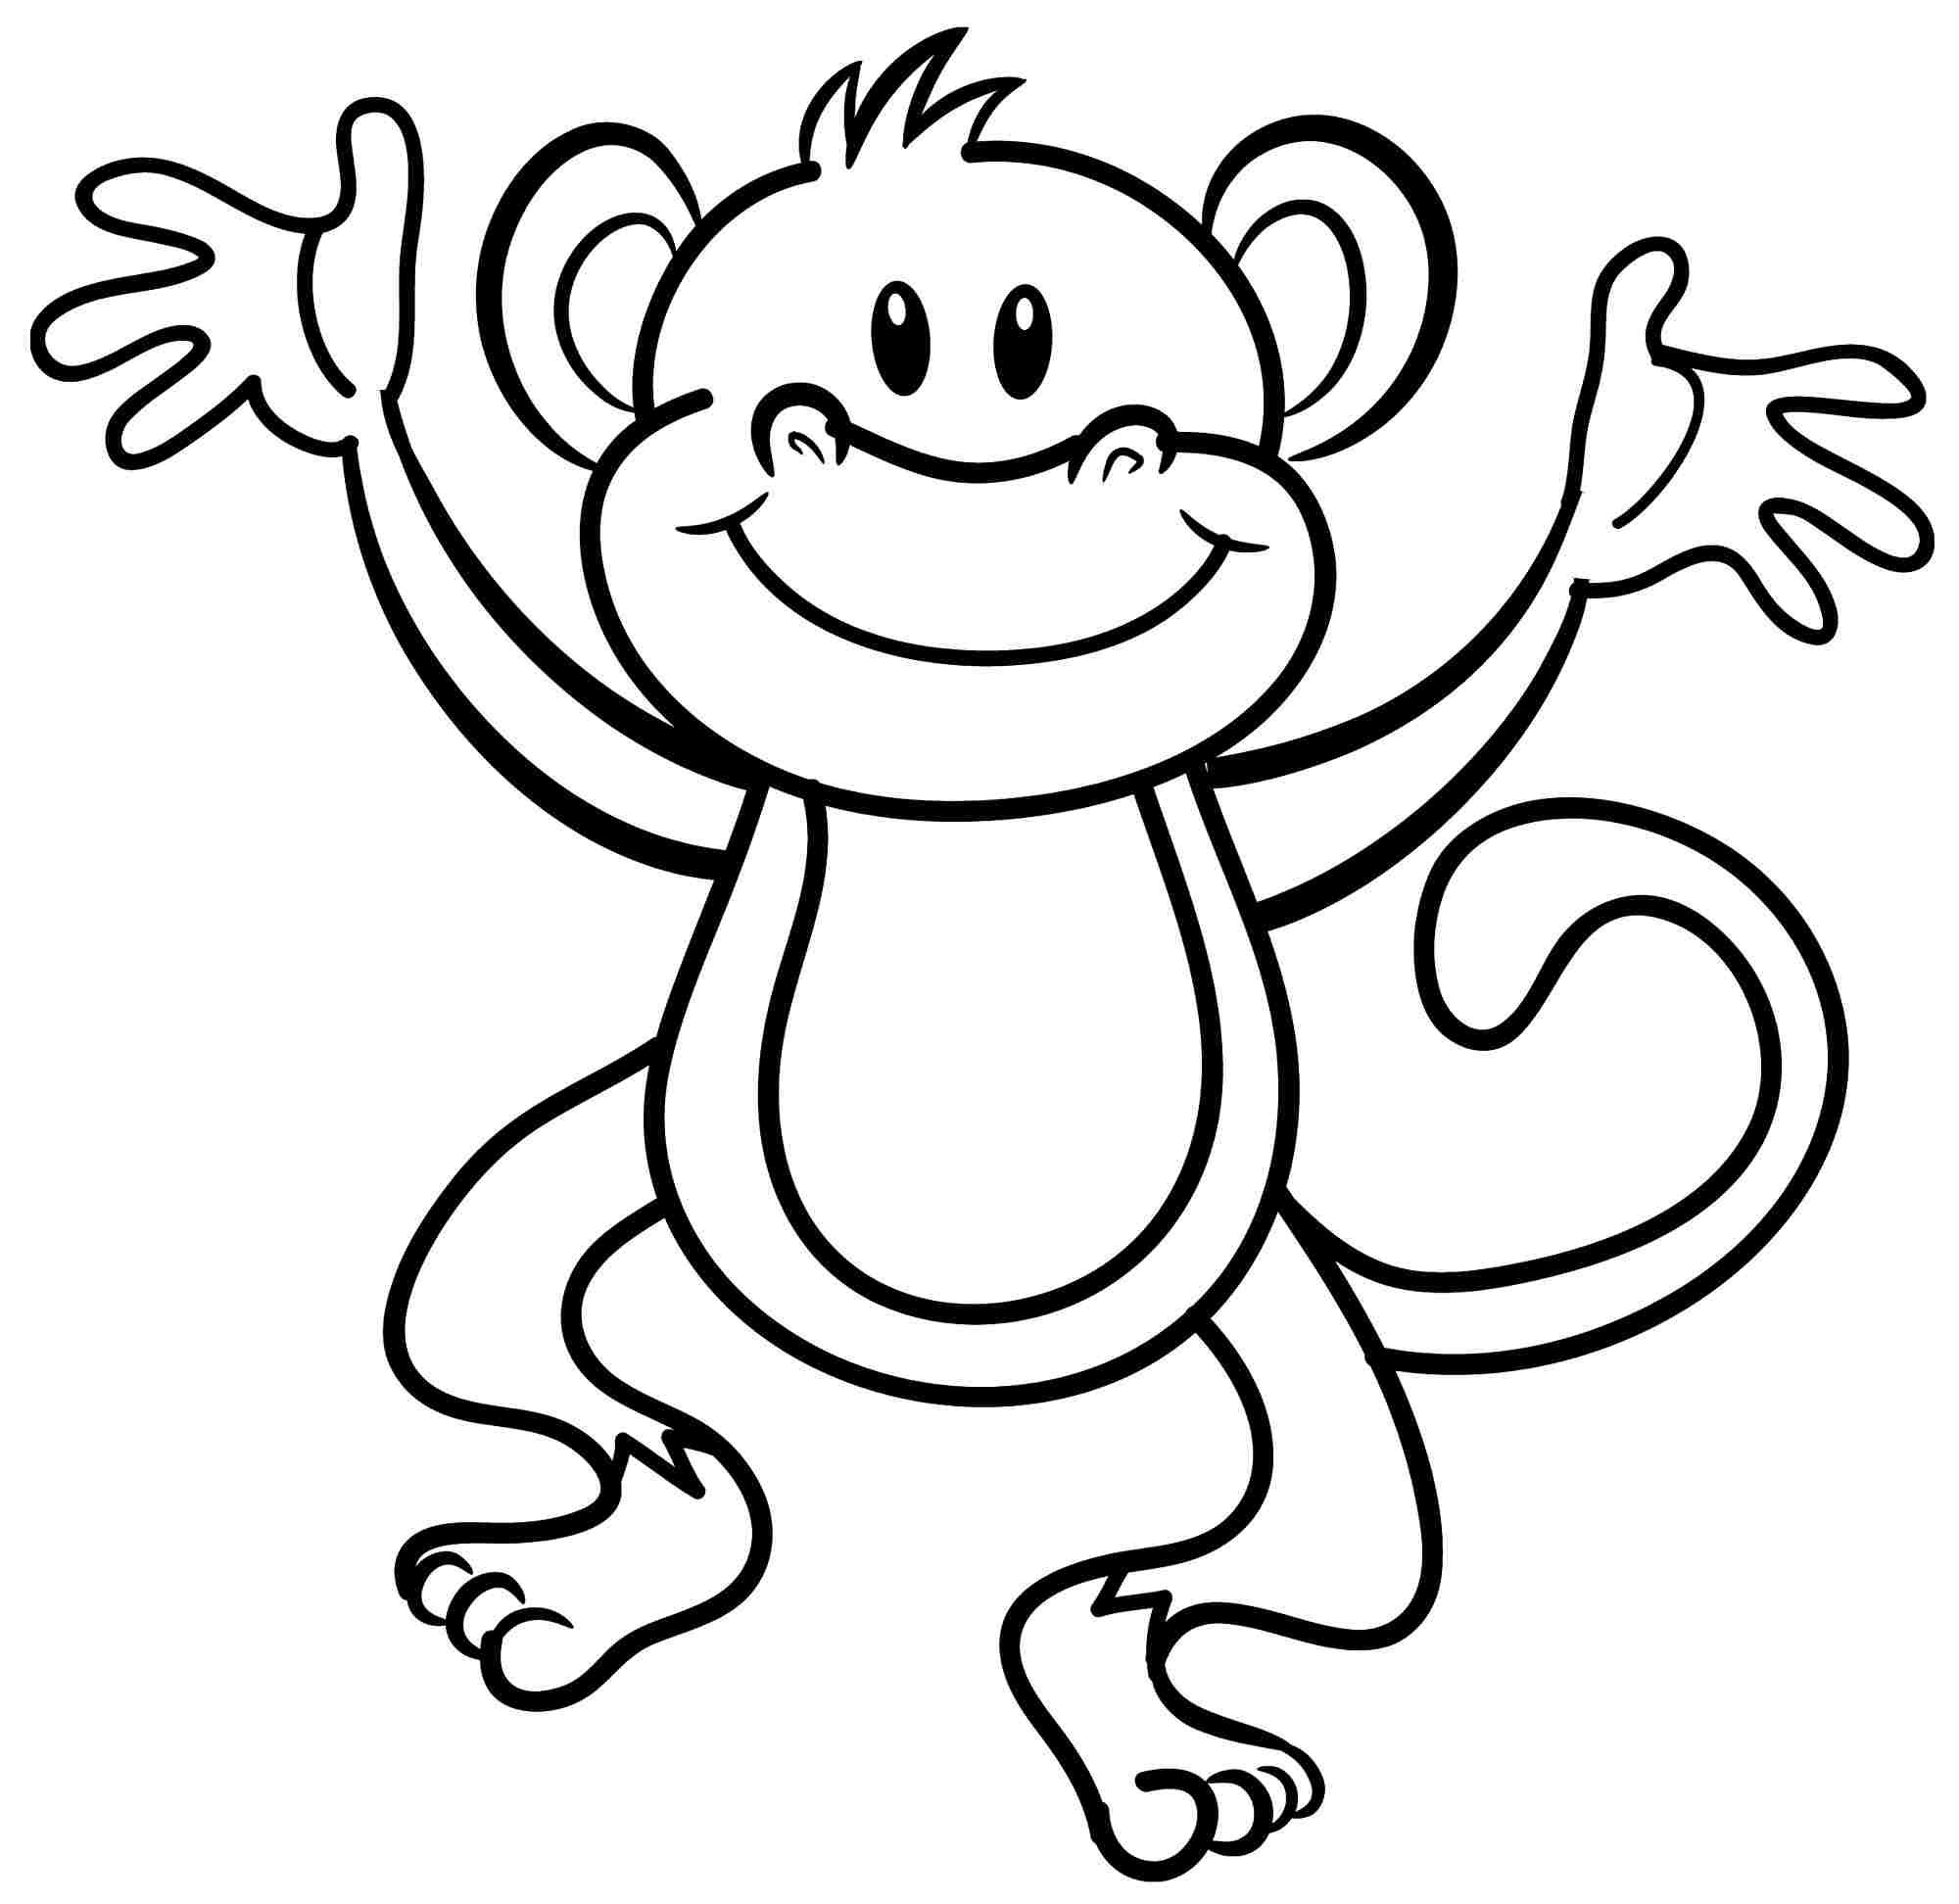 monkey pictures to color monkeys to print for free monkeys kids coloring pages color monkey pictures to